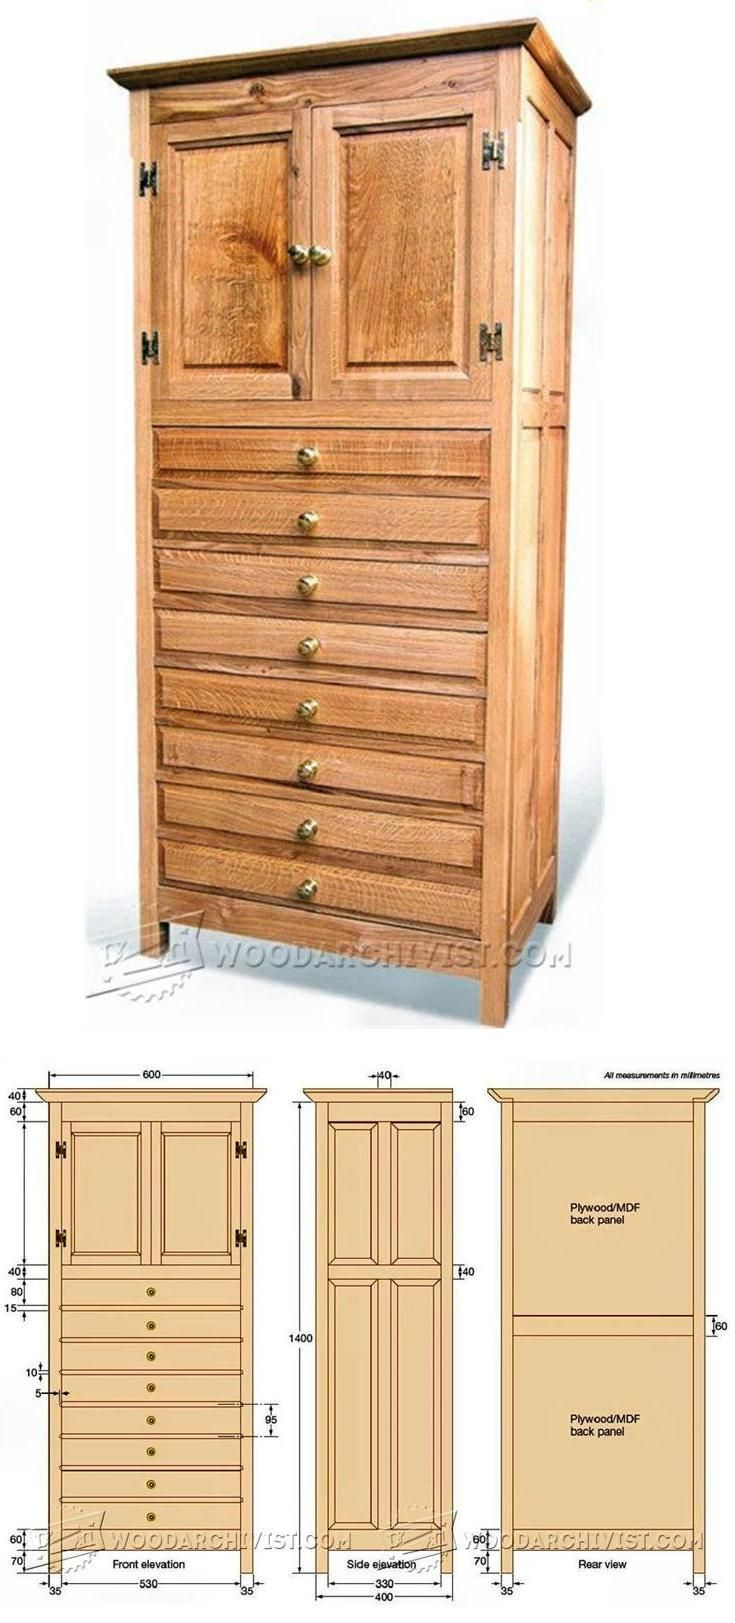 cabinet woodworking plans: amazing new woodworker tips to get